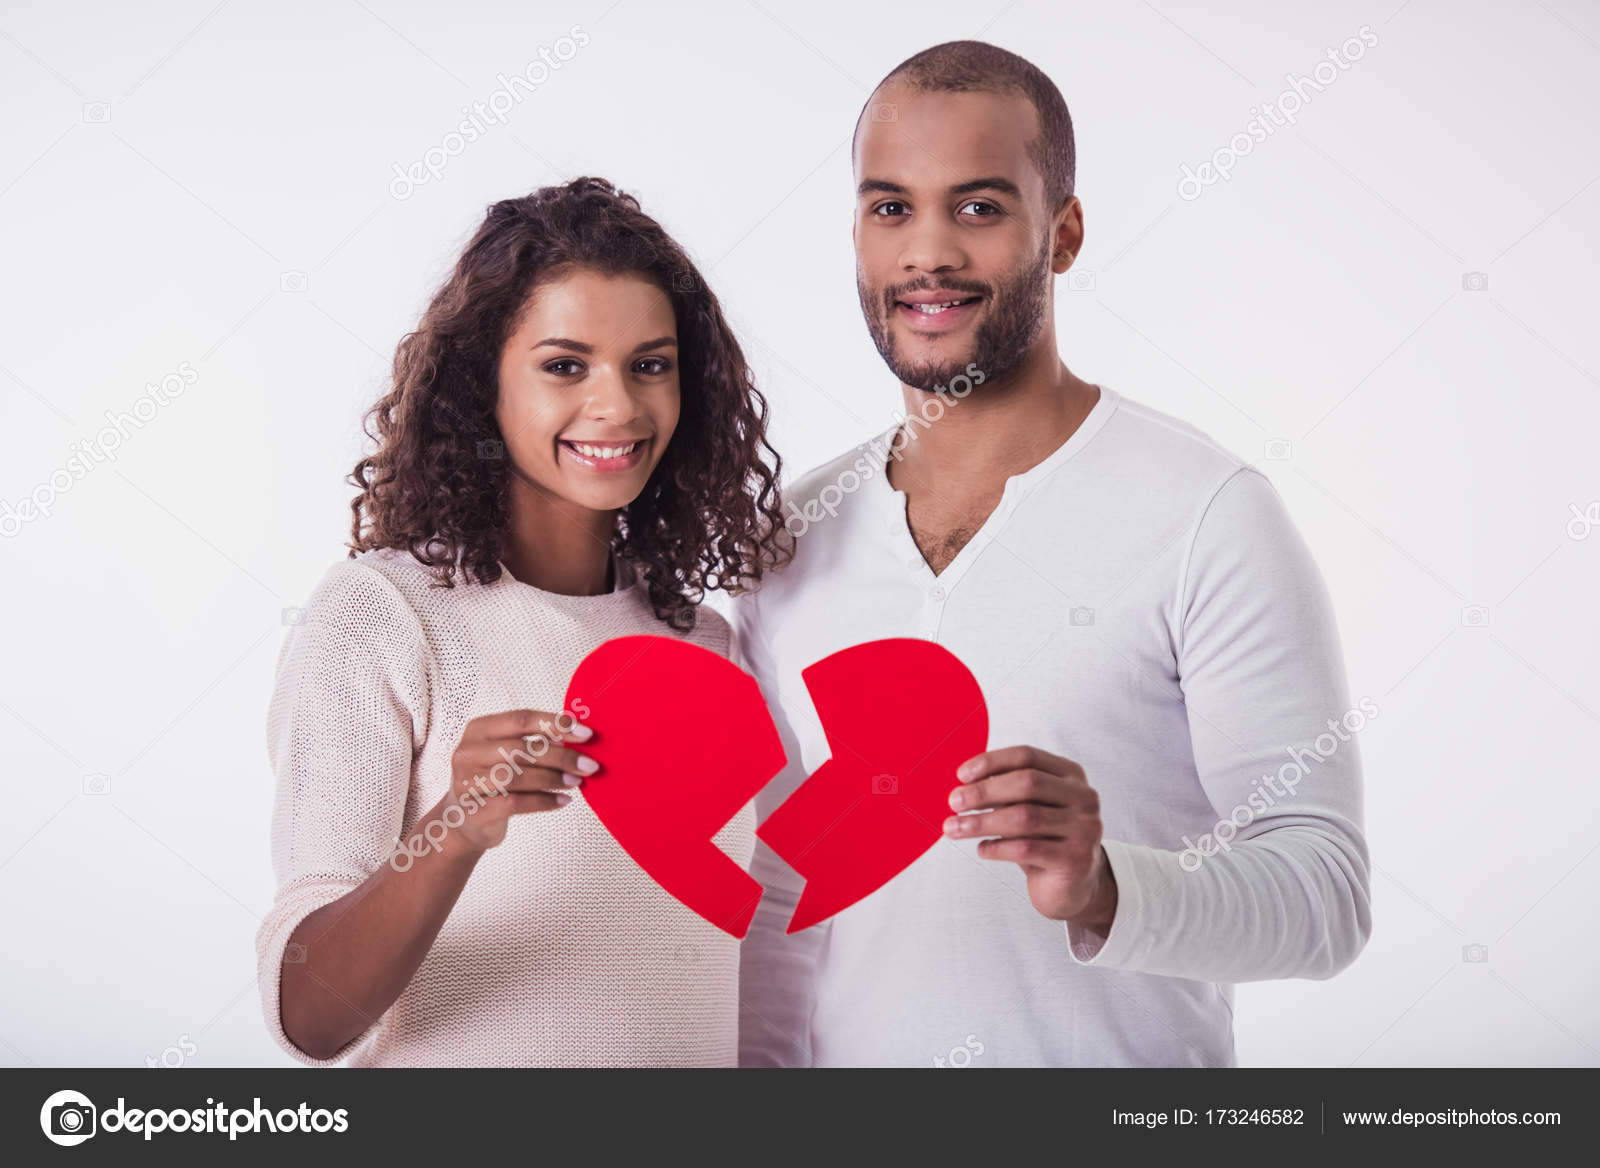 African-american dating couples images hd background